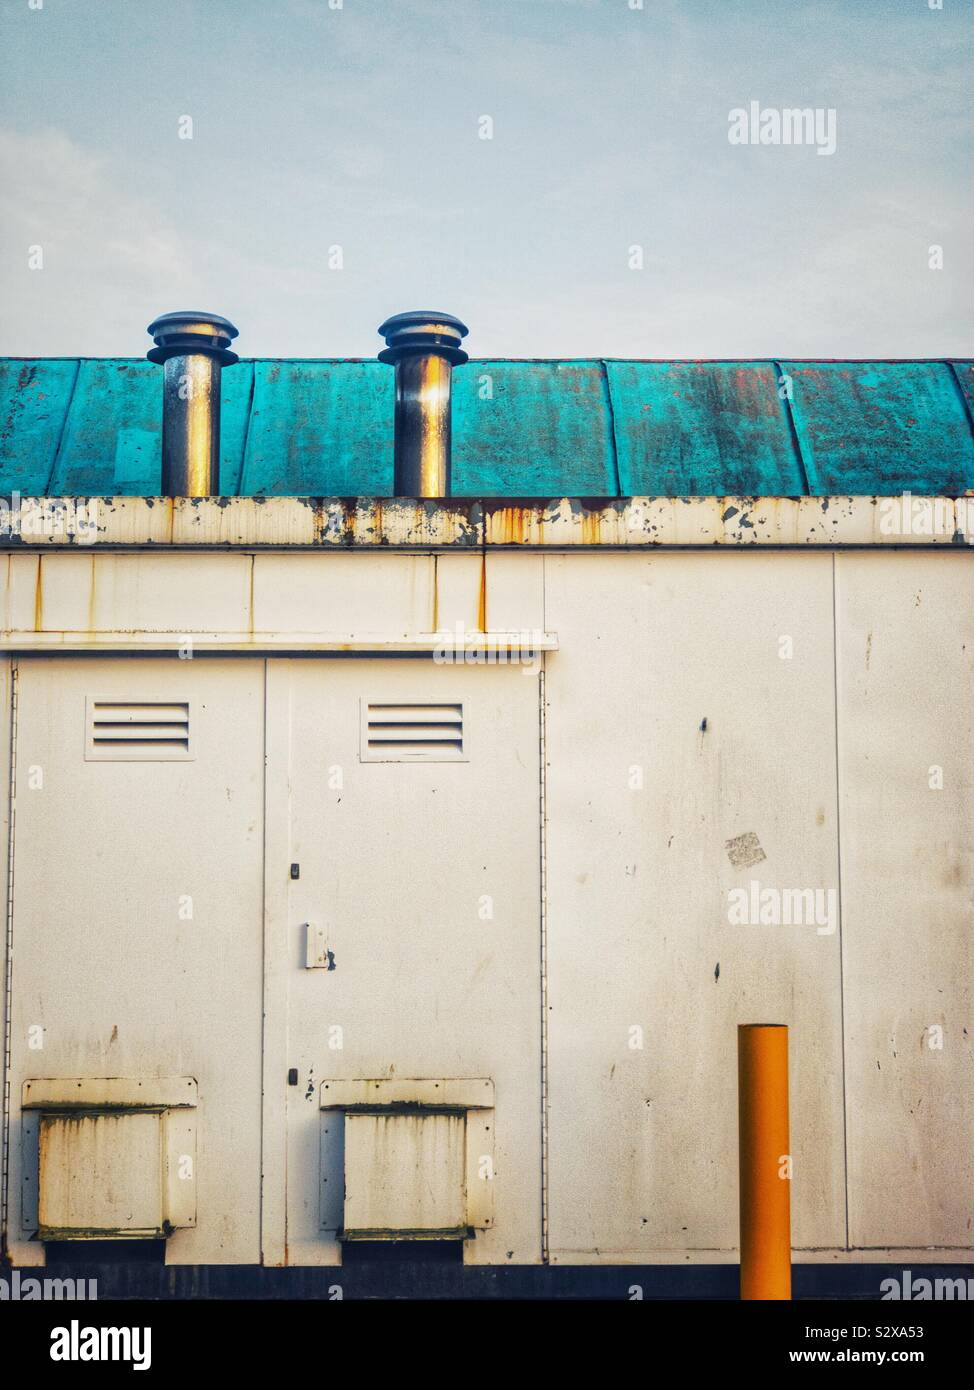 Industrial equipment on side of building. Stock Photo